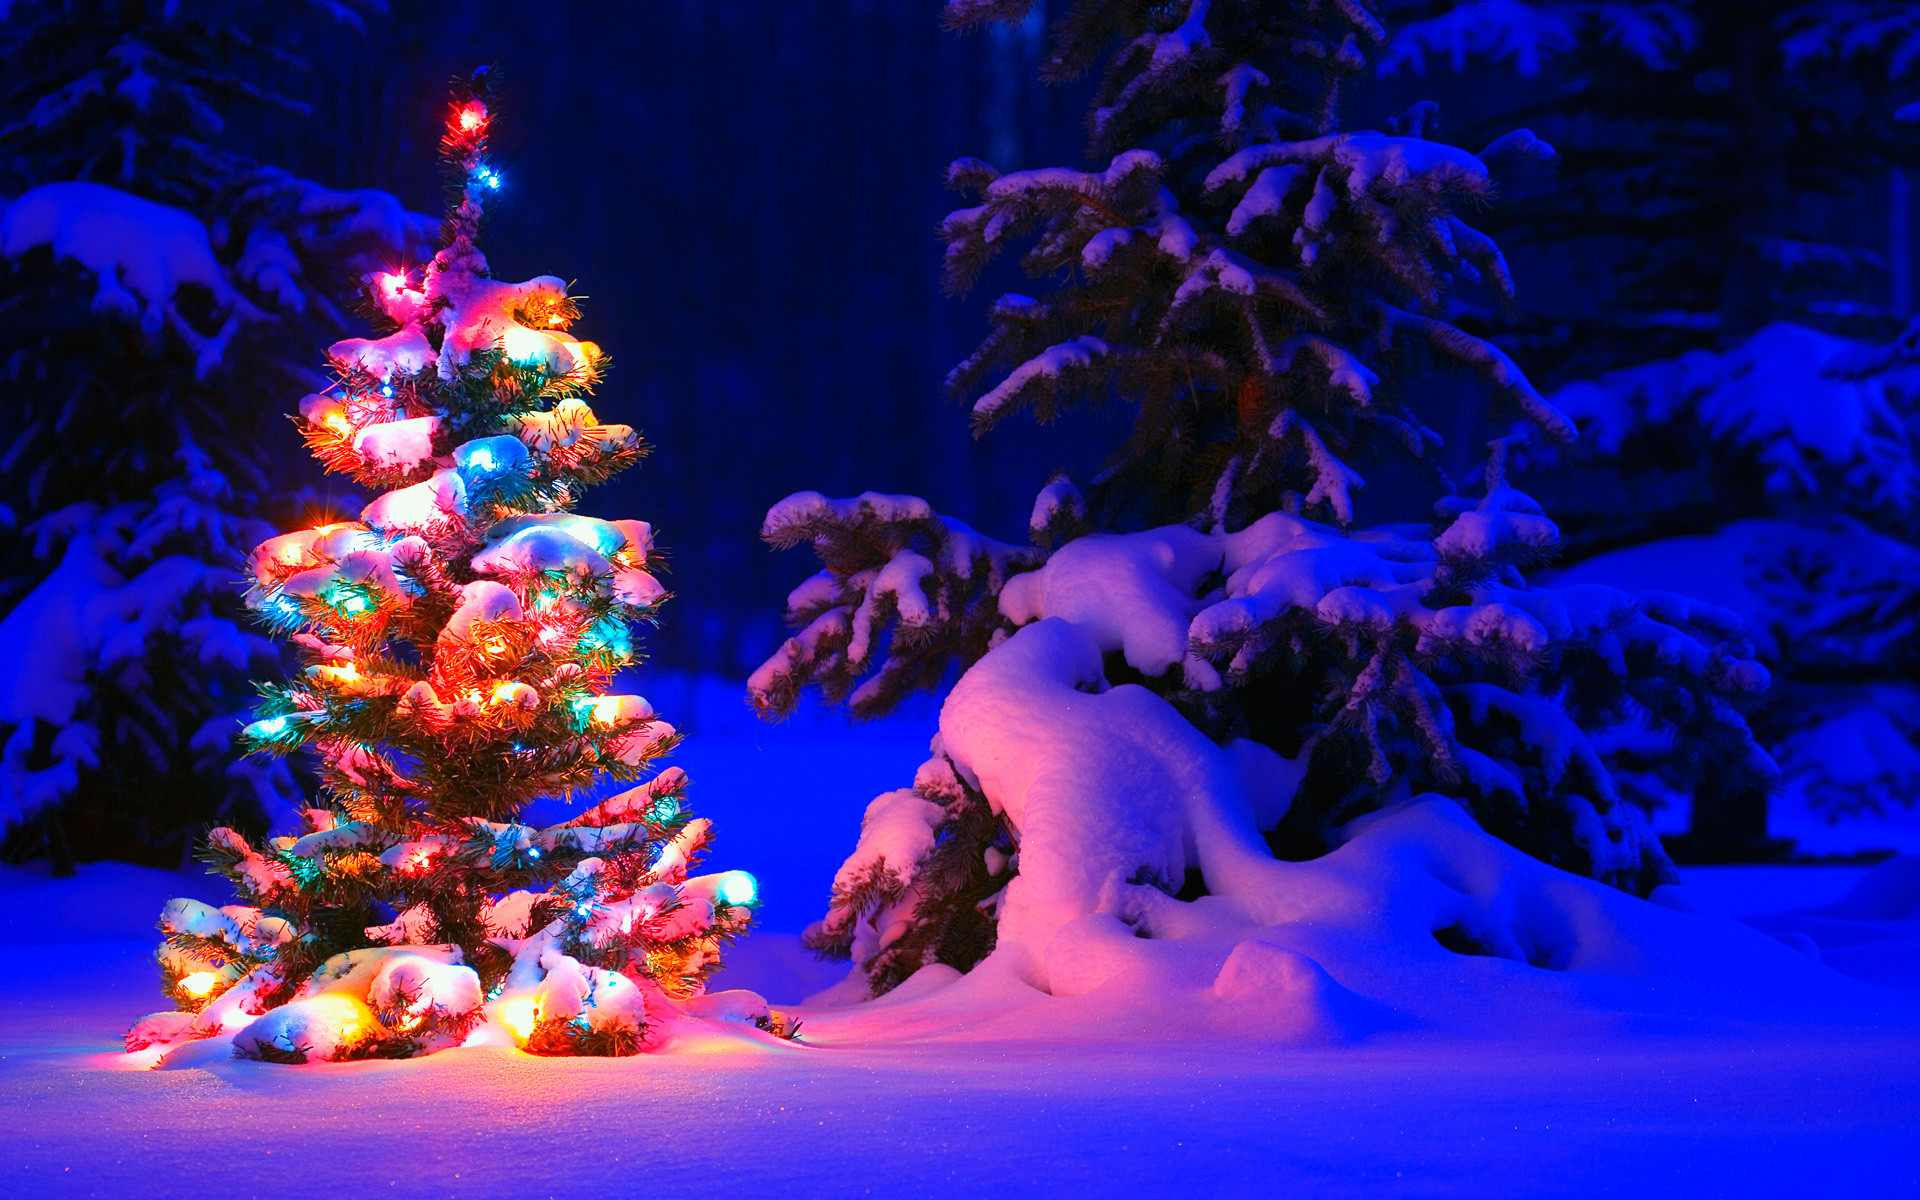 Christmas Wallpapers For Desktop 55 Images